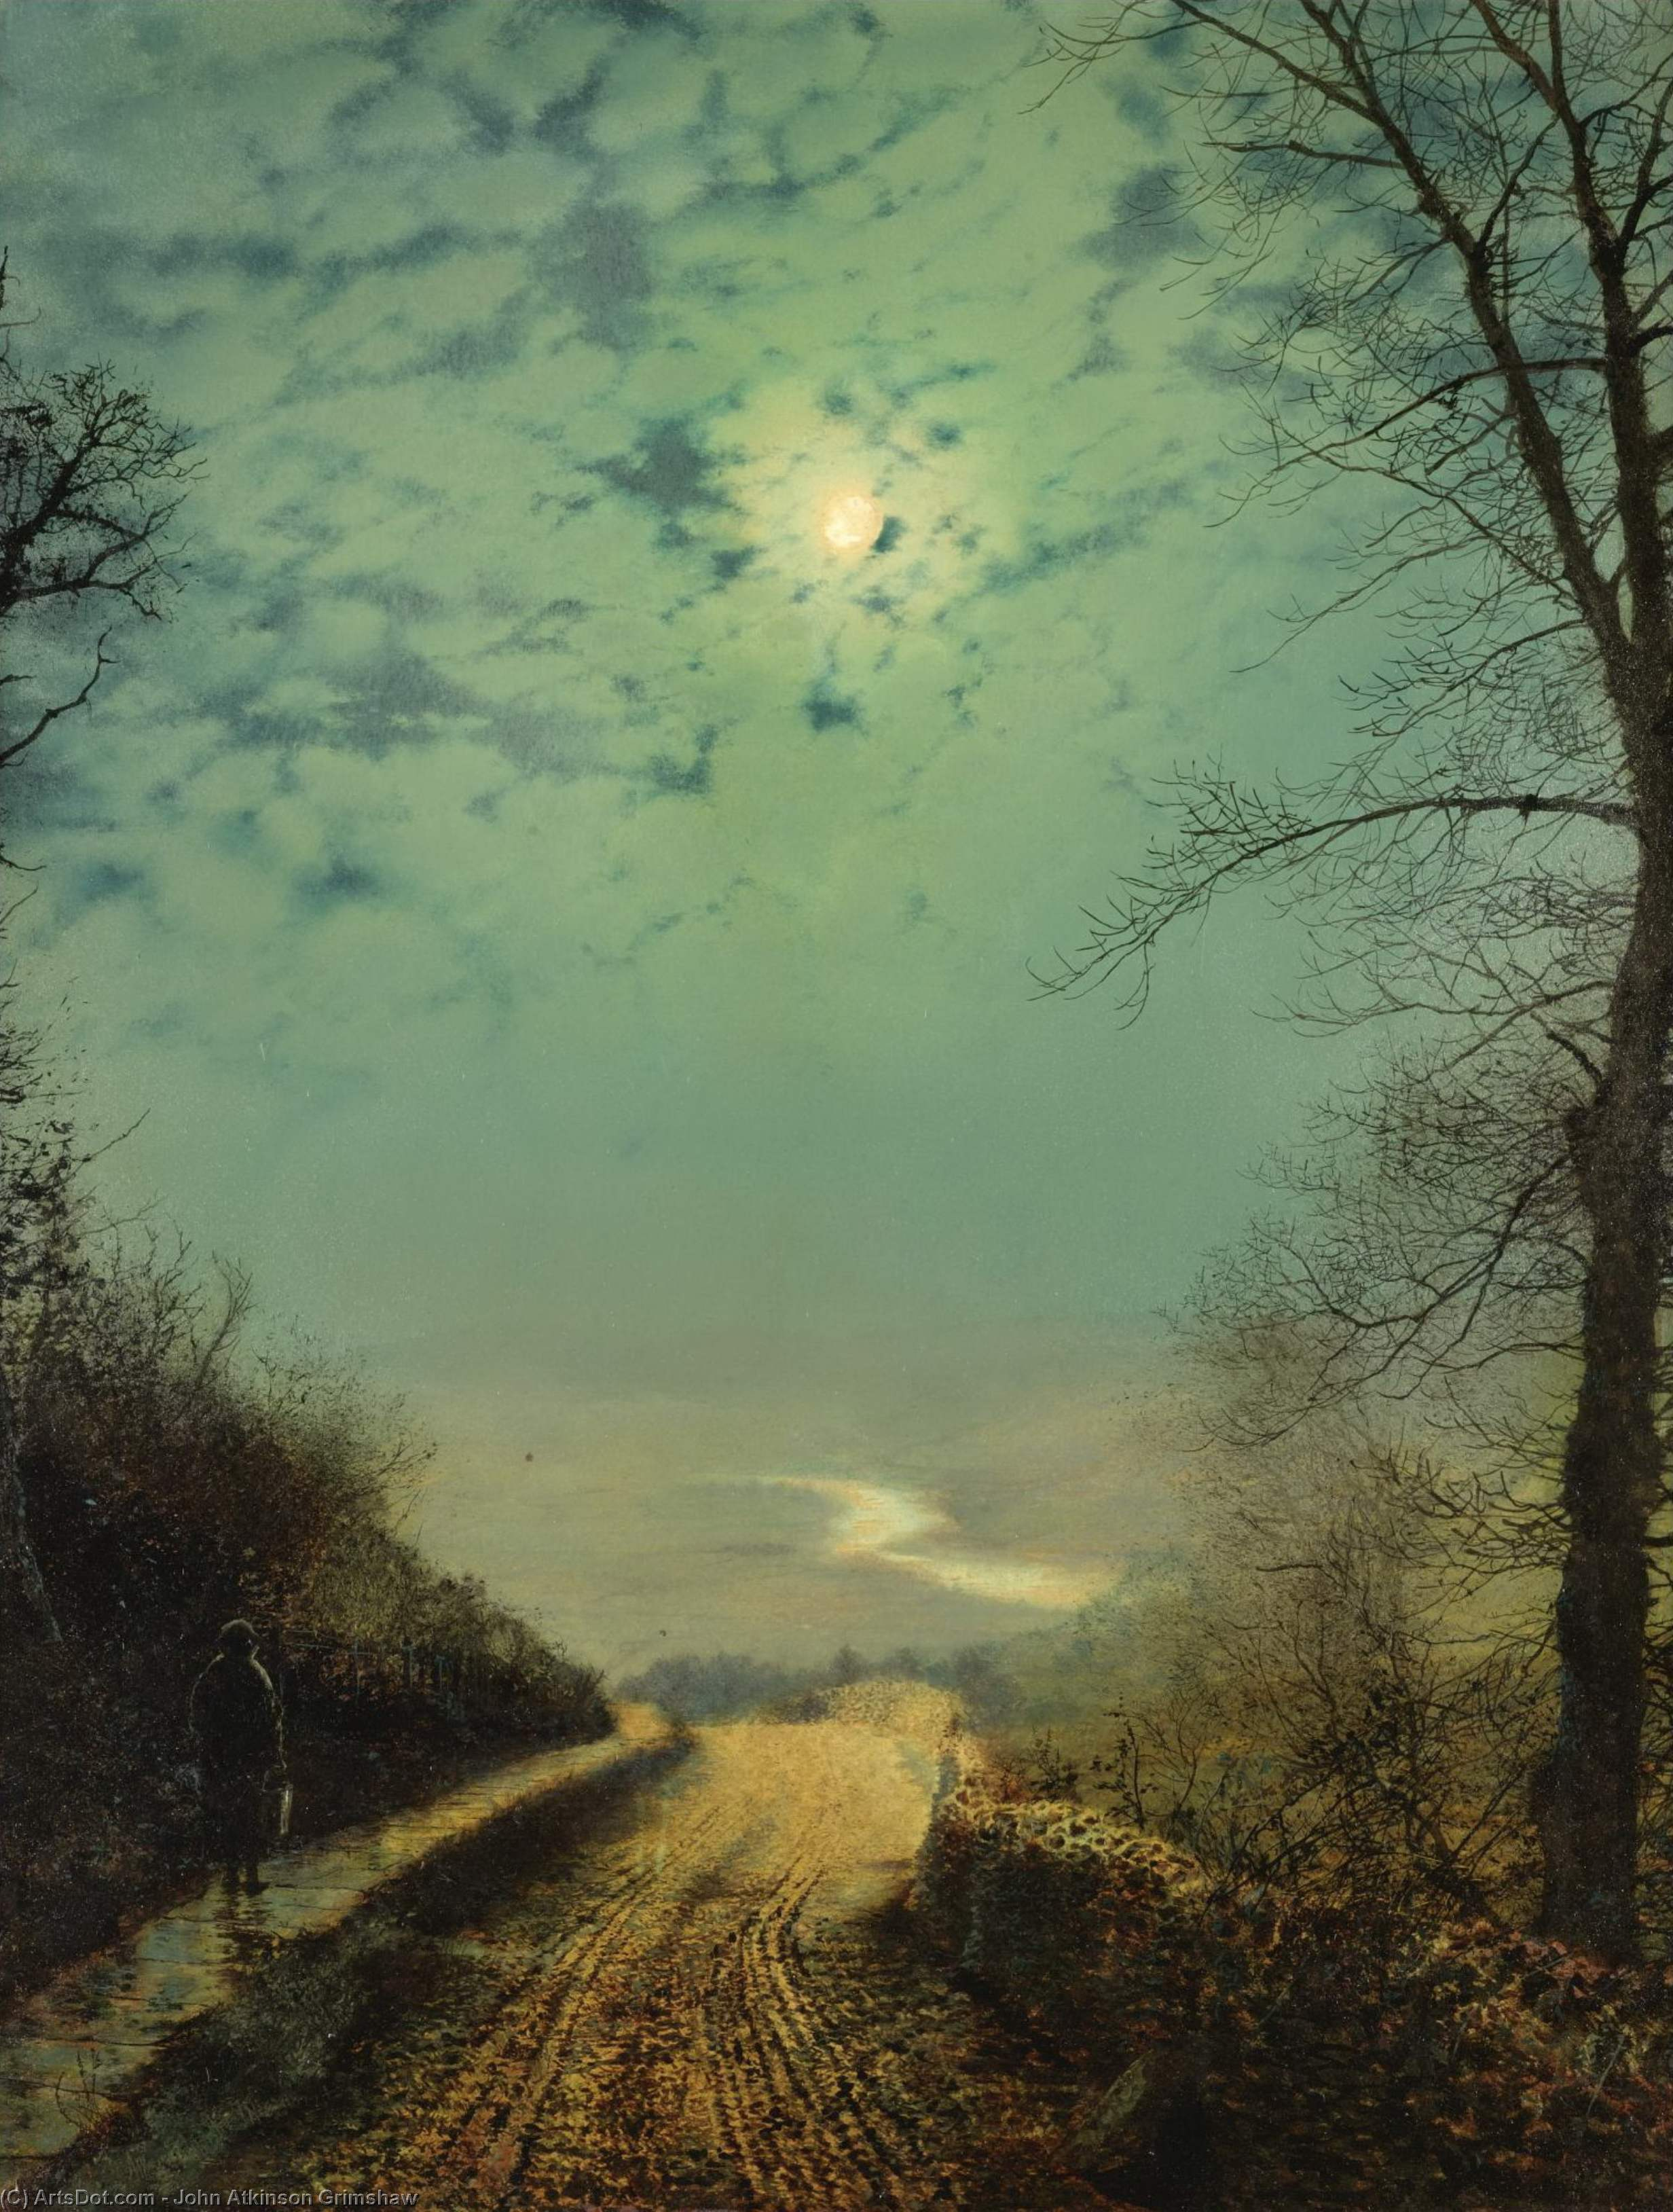 A Wet Road By Moonlight, Wharfedale, Oil by John Atkinson Grimshaw (1836-1893, United Kingdom)